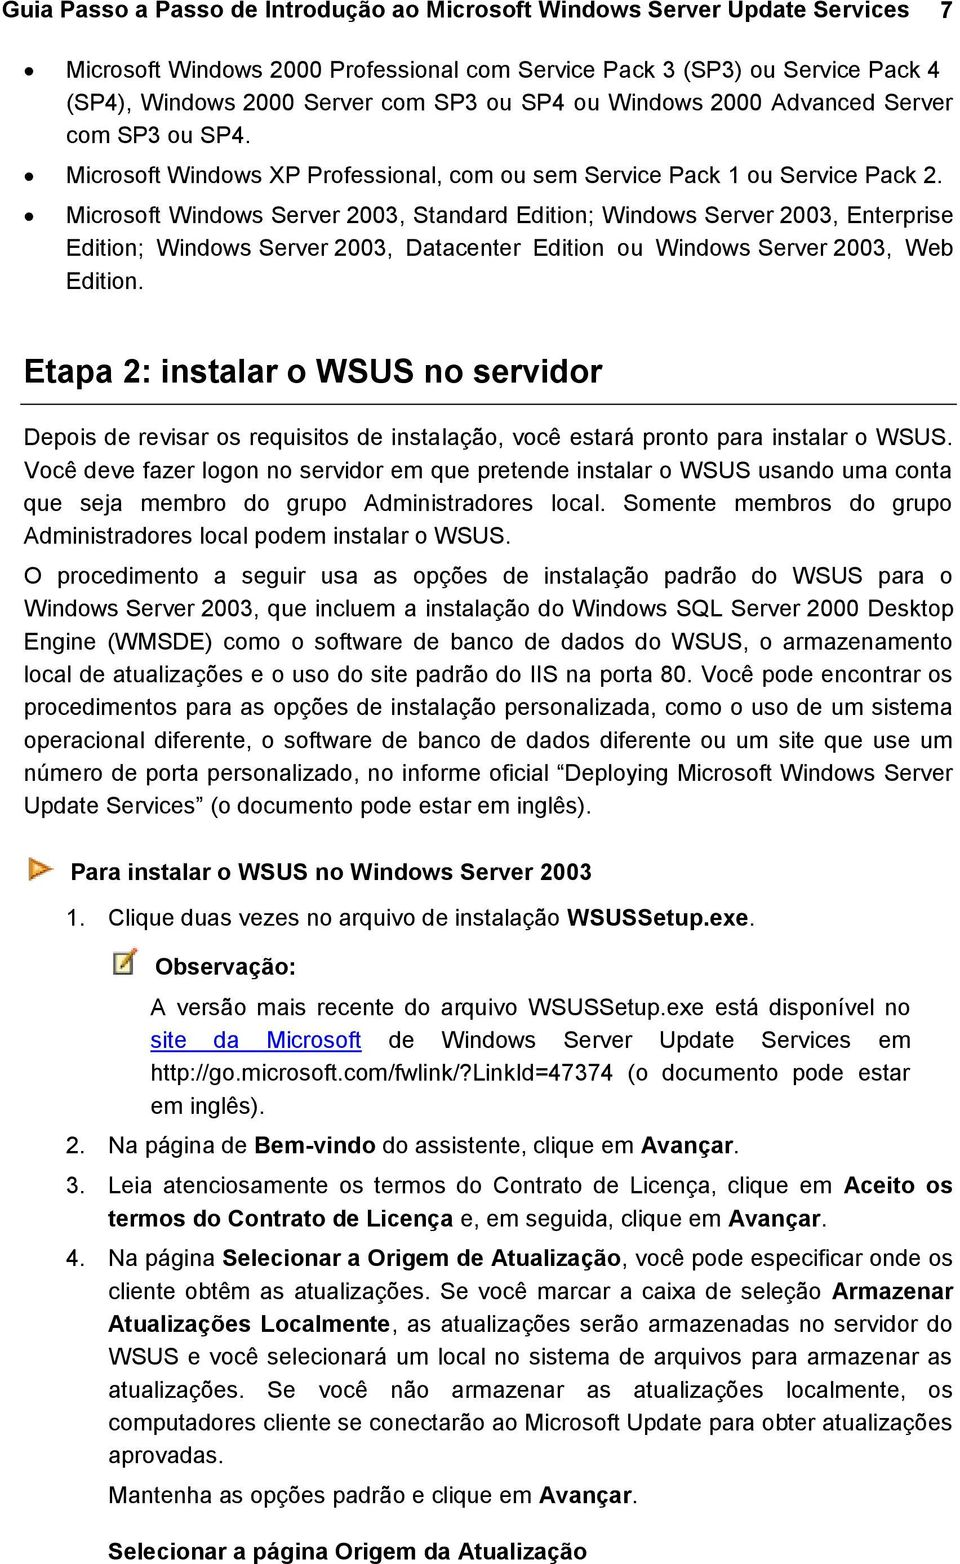 Microsoft Windows Server 2003, Standard Edition; Windows Server 2003, Enterprise Edition; Windows Server 2003, Datacenter Edition ou Windows Server 2003, Web Edition.